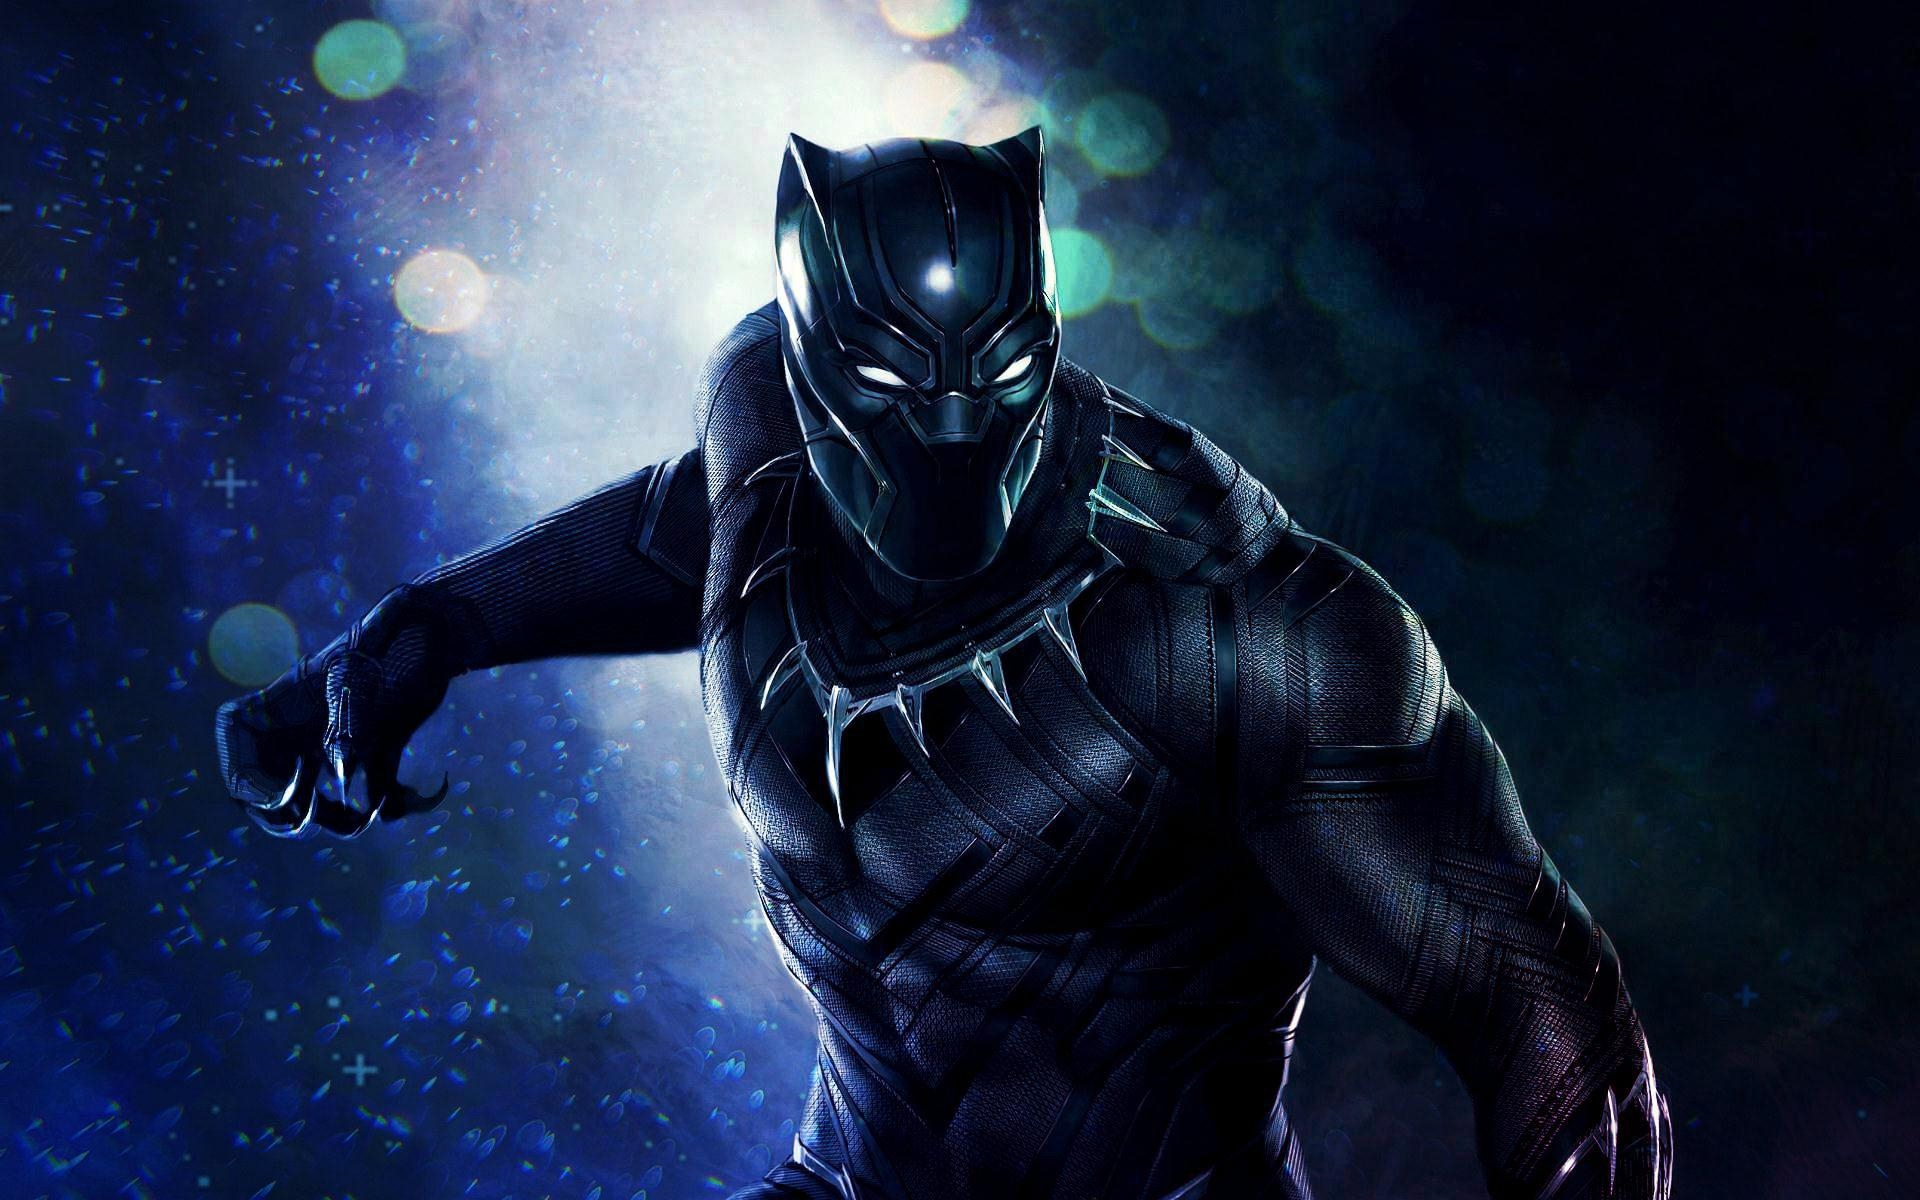 Black Panther Wallpaper Free Download